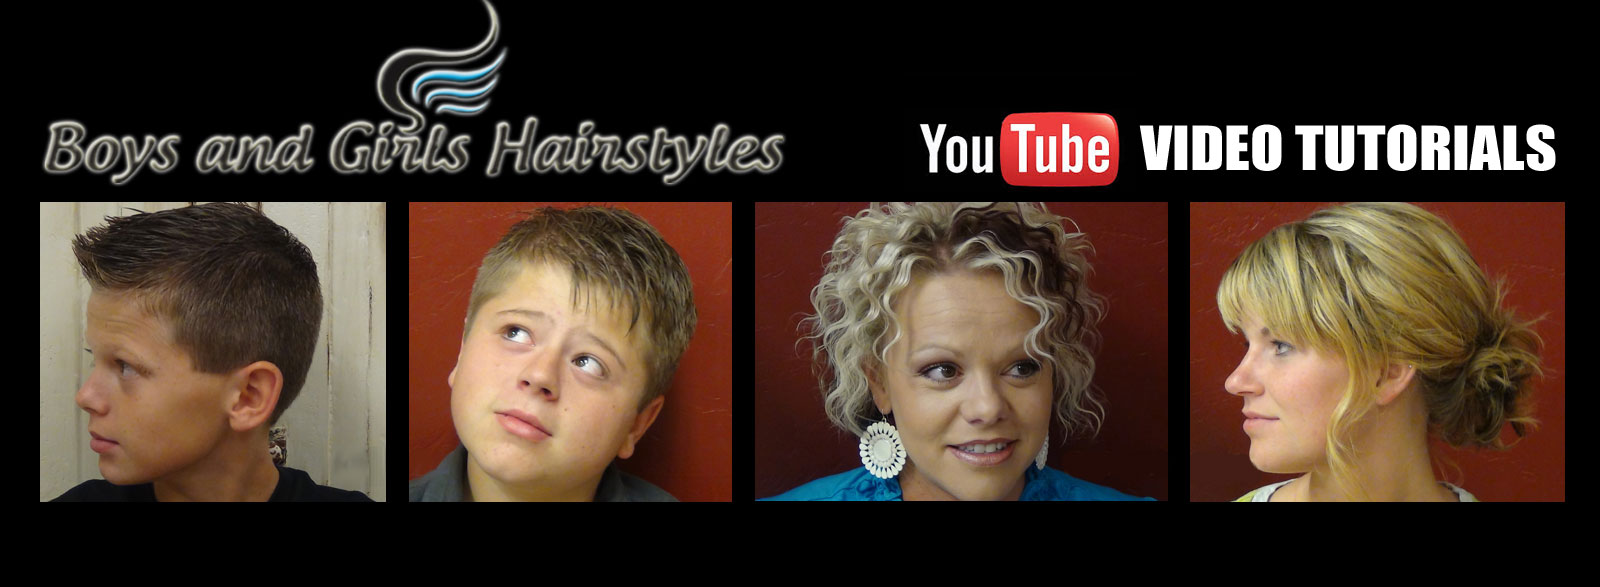 Boys and Girls Hair Styles